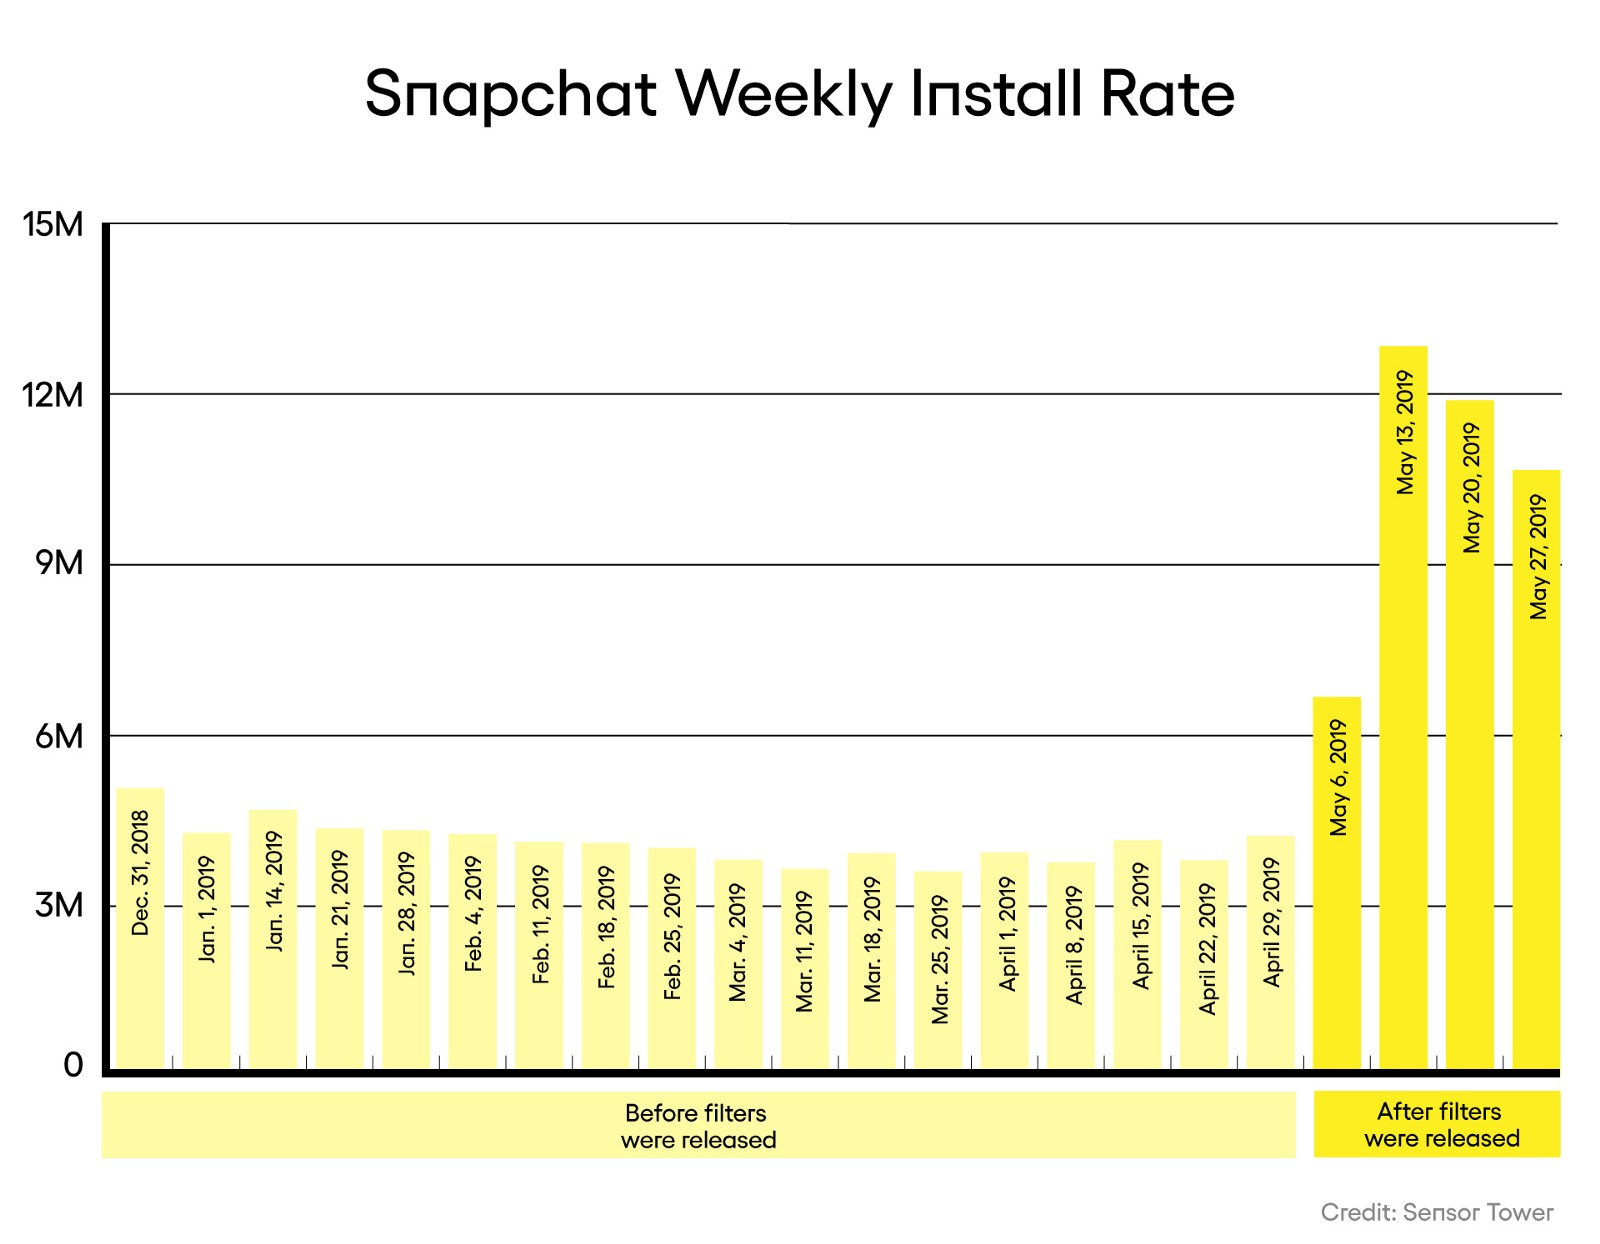 Snapchat is a significant revenue driver for 65% of